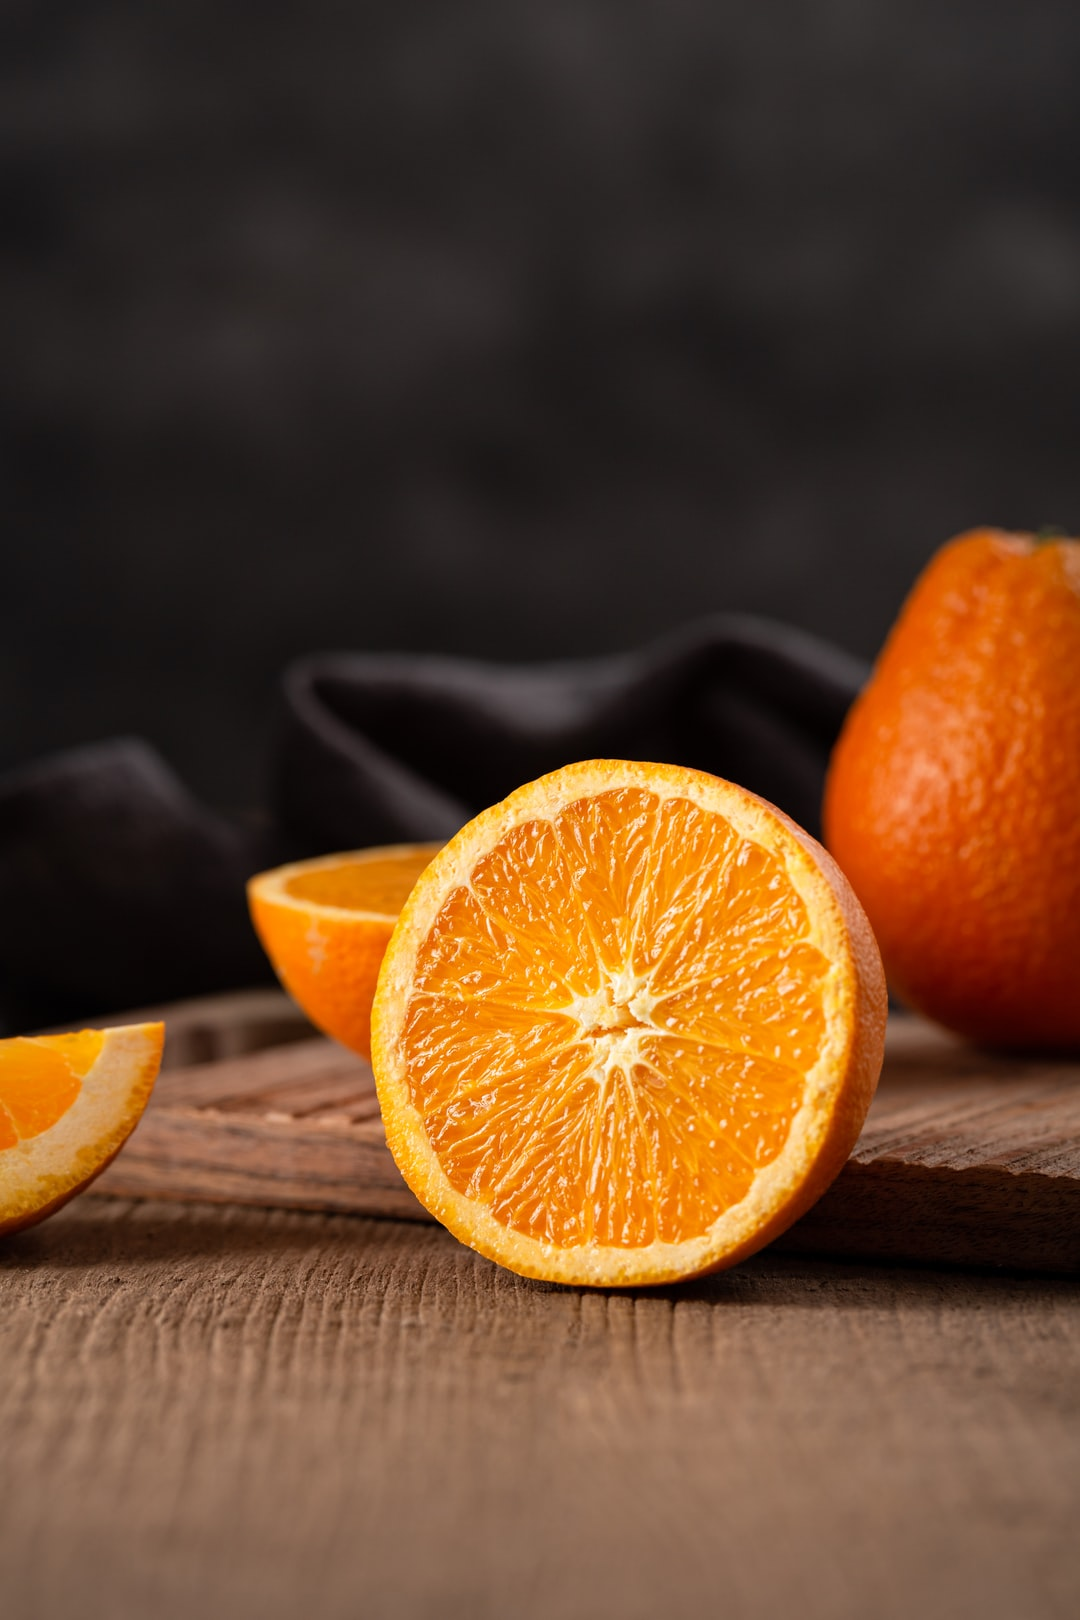 The subject is fresh and juicy oranges. Black cardboard on the right is used to add shadows. A strip box on the left side as the main light, and a square softbox on the back right side as the background light. (check out my ins@picoftasty for more lighting setup and camera setttings)   *Keep track of my latest project, all things about food photography & food stylist here:  - Instagram: https://www.instagram.com/picoftasty/  - Website: https://www.picoftasty.com/  - Email: picoftasty@gmail.com